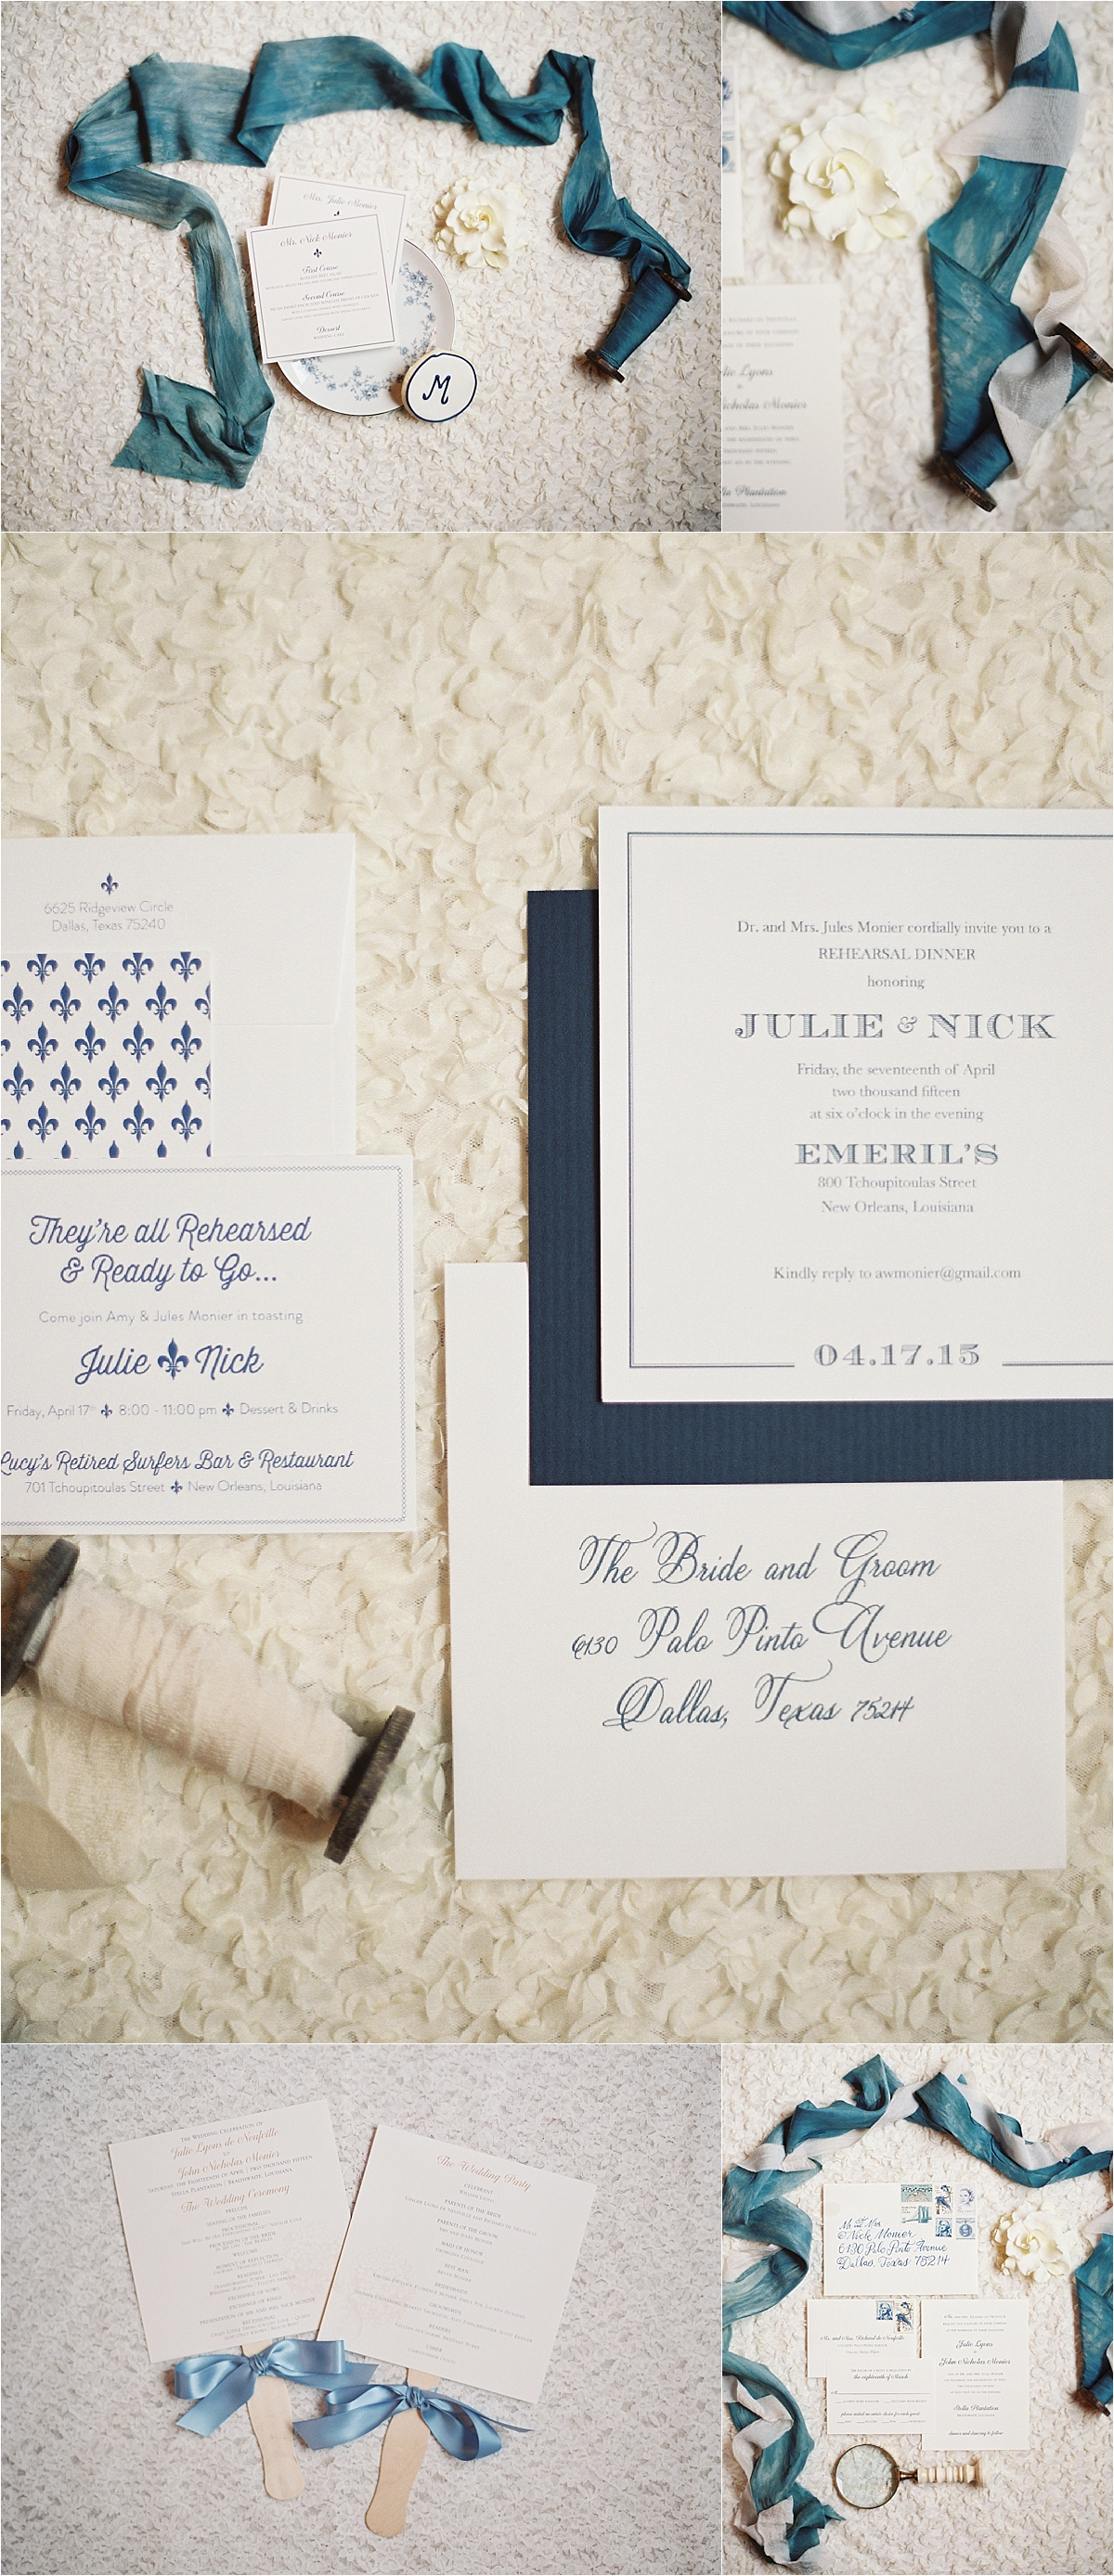 Sapphire Events | Catherine Guidry Photography | Wedding Planning | New Orleans Wedding | Stella Plantation Wedding | Blue and White Wedding | Classic Rainy Day Wedding | Outdoor Wedding | Tent Wedding | Hunter Boots | Blue and White Wedding Details | Blue and White Stationery | Blue Calligraphy